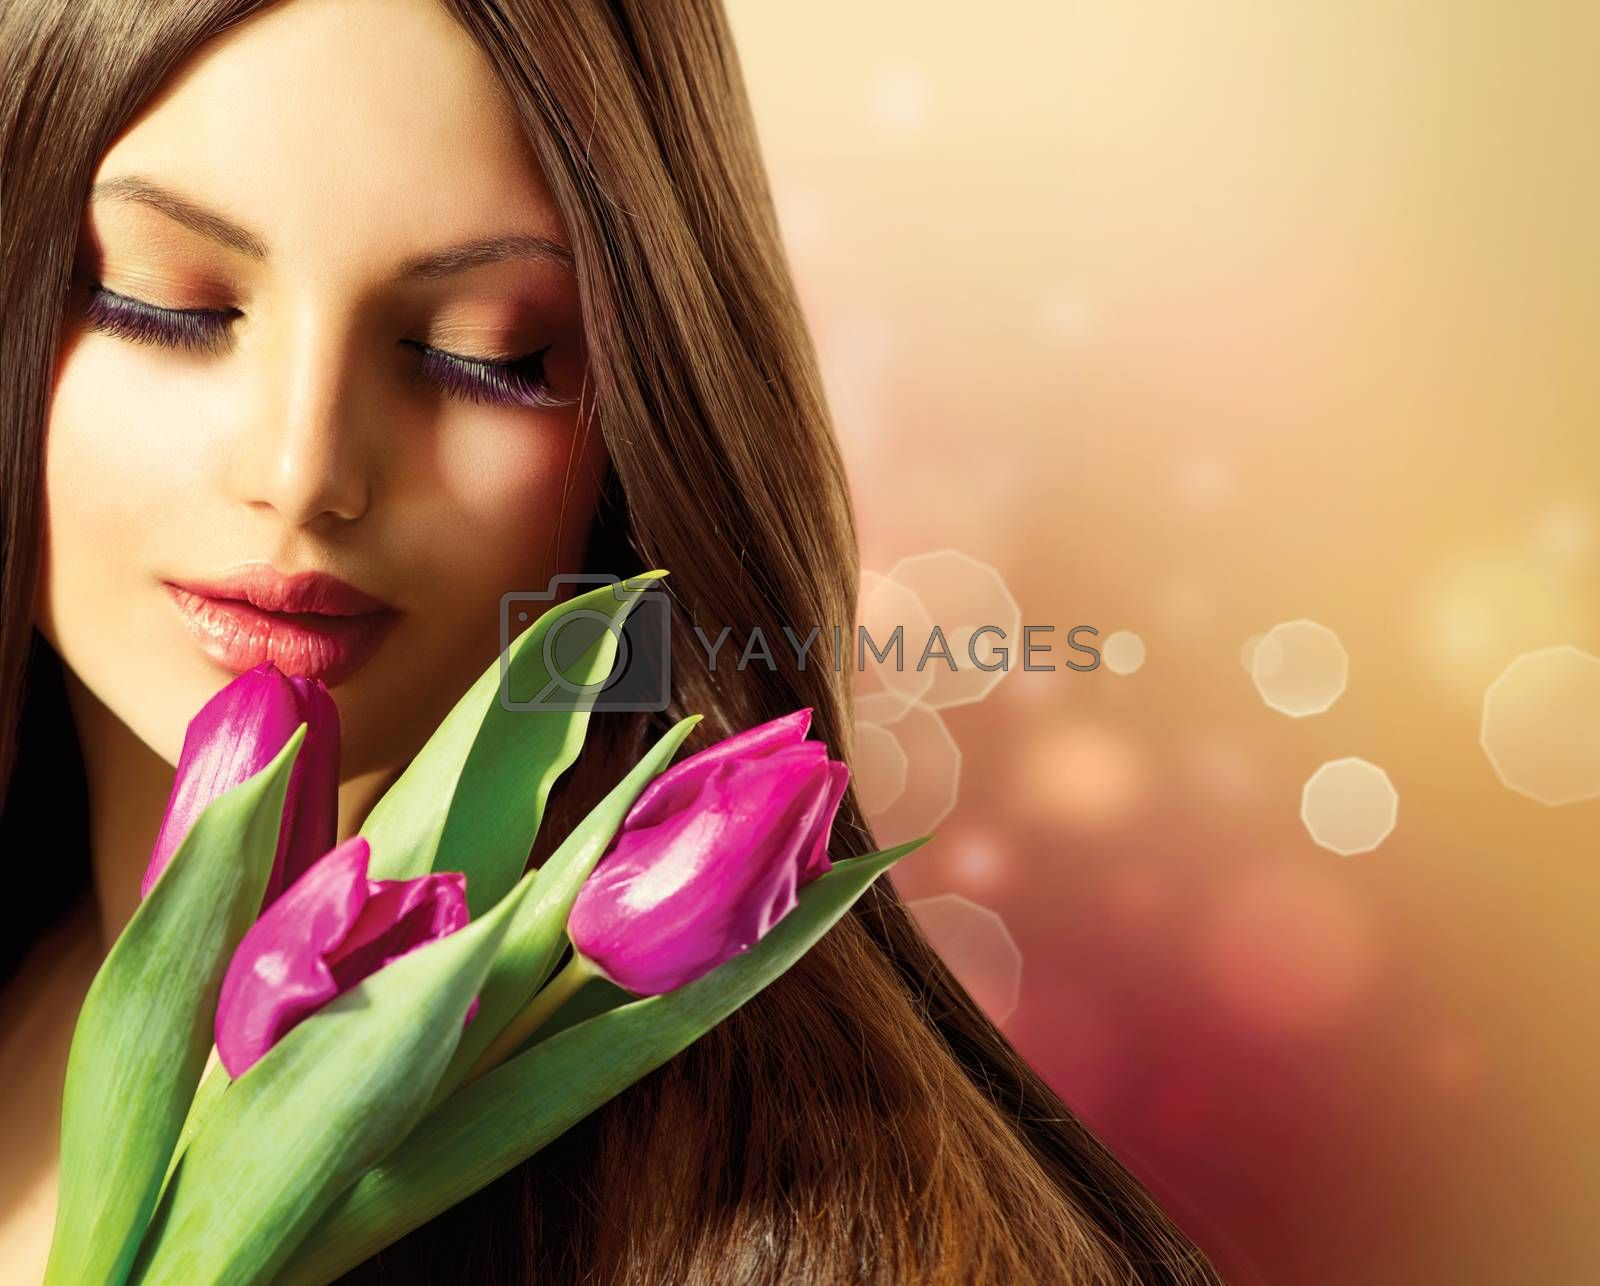 Royalty free image of Beauty Woman with Spring Flower bouquet by SubbotinaA